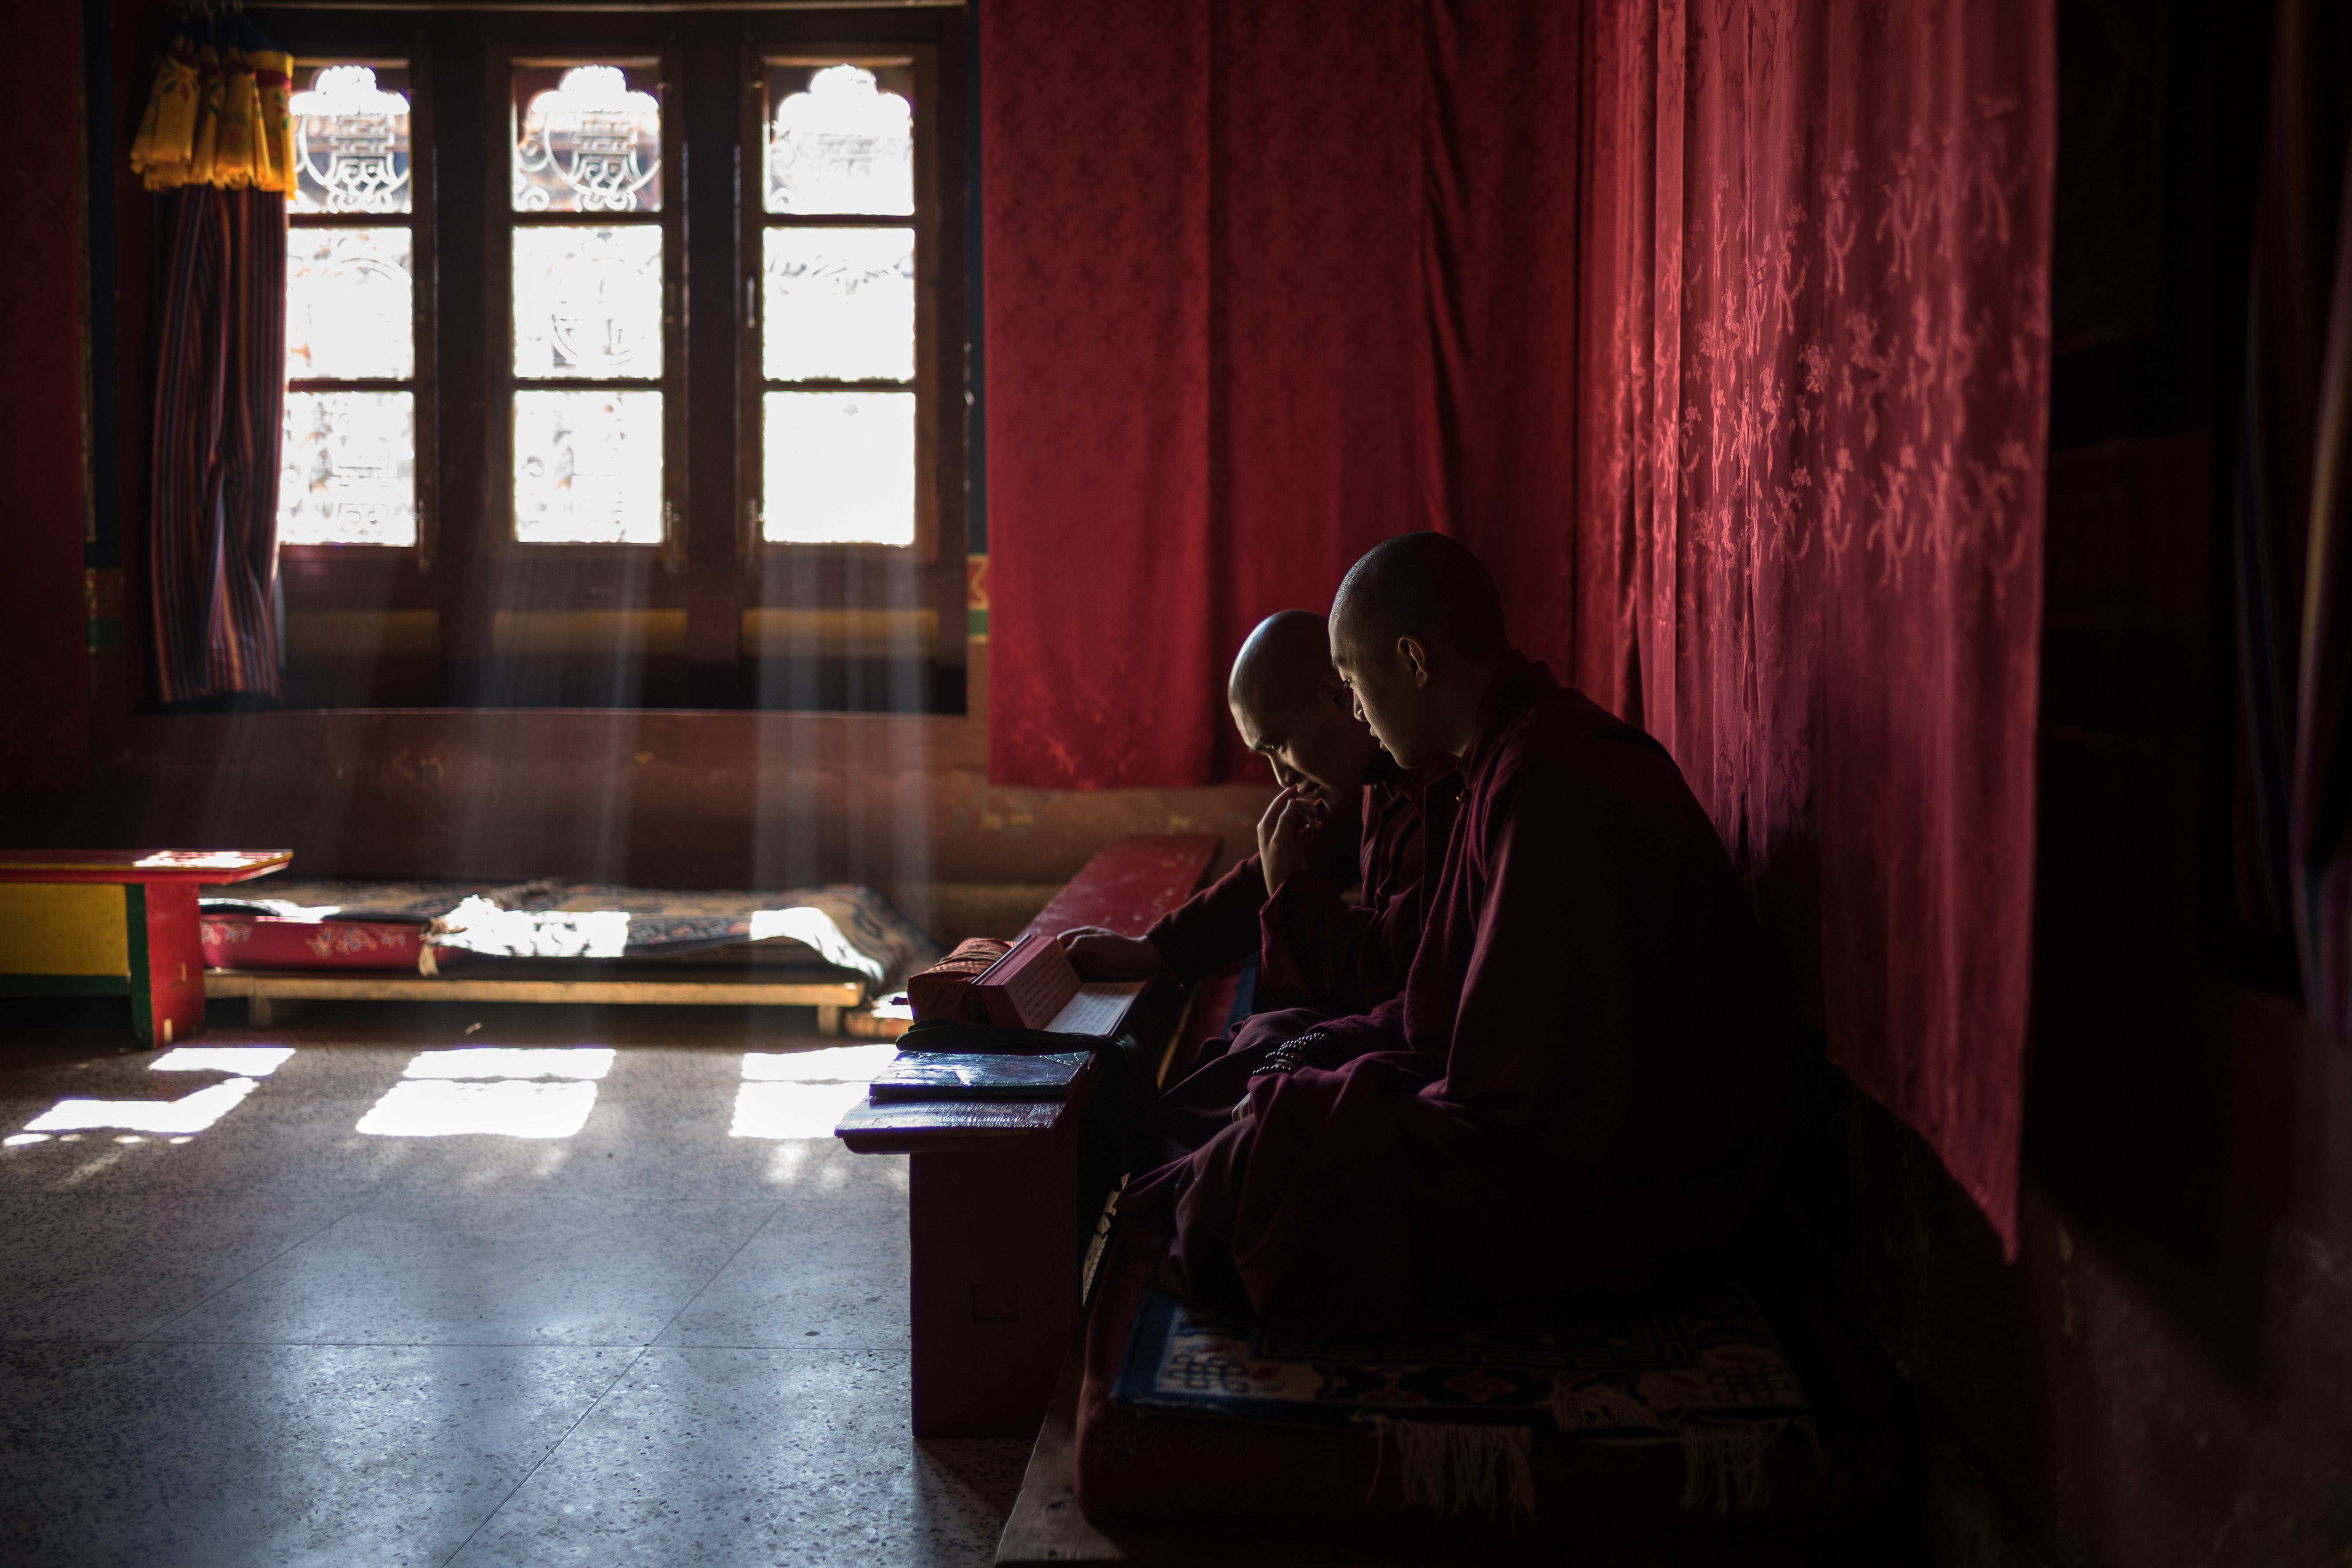 Monks prayer session in Bhutan